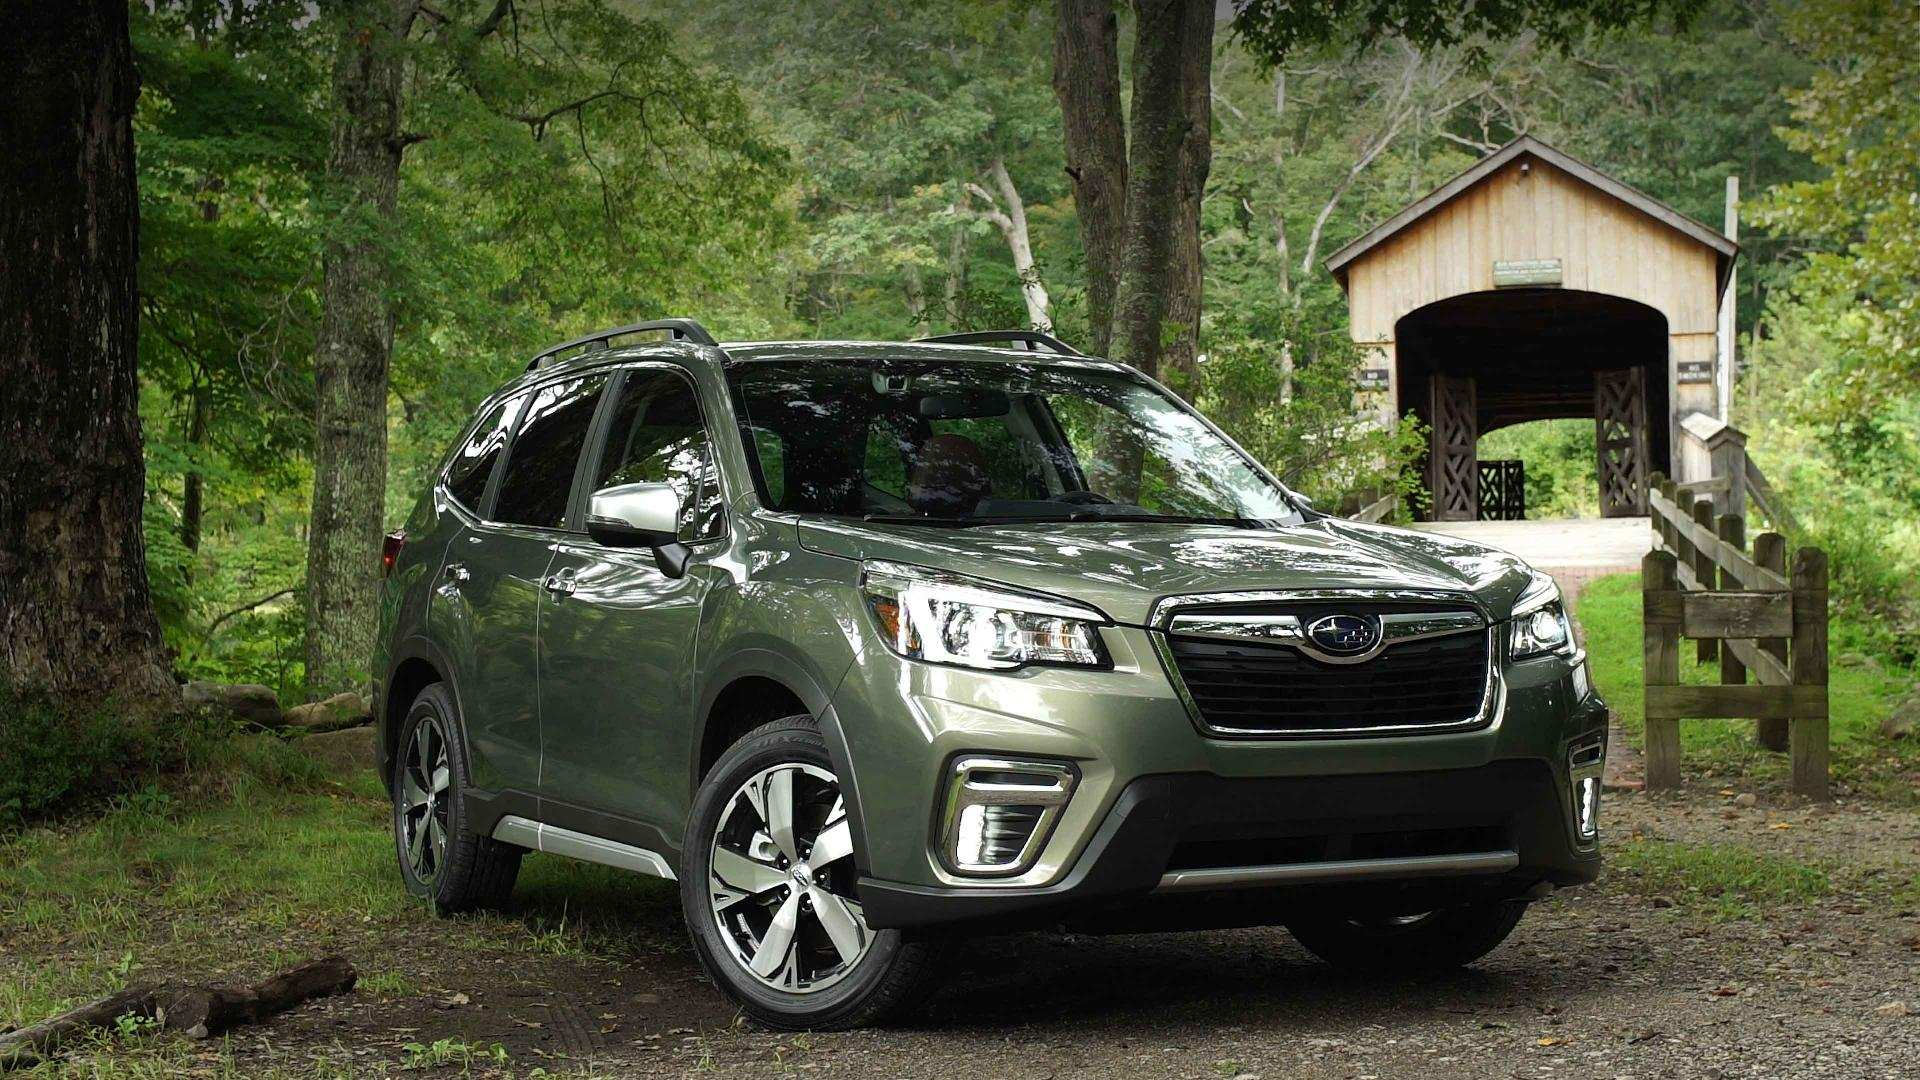 50 A Subaru 2019 Exterior Colors Review New Model And Performance